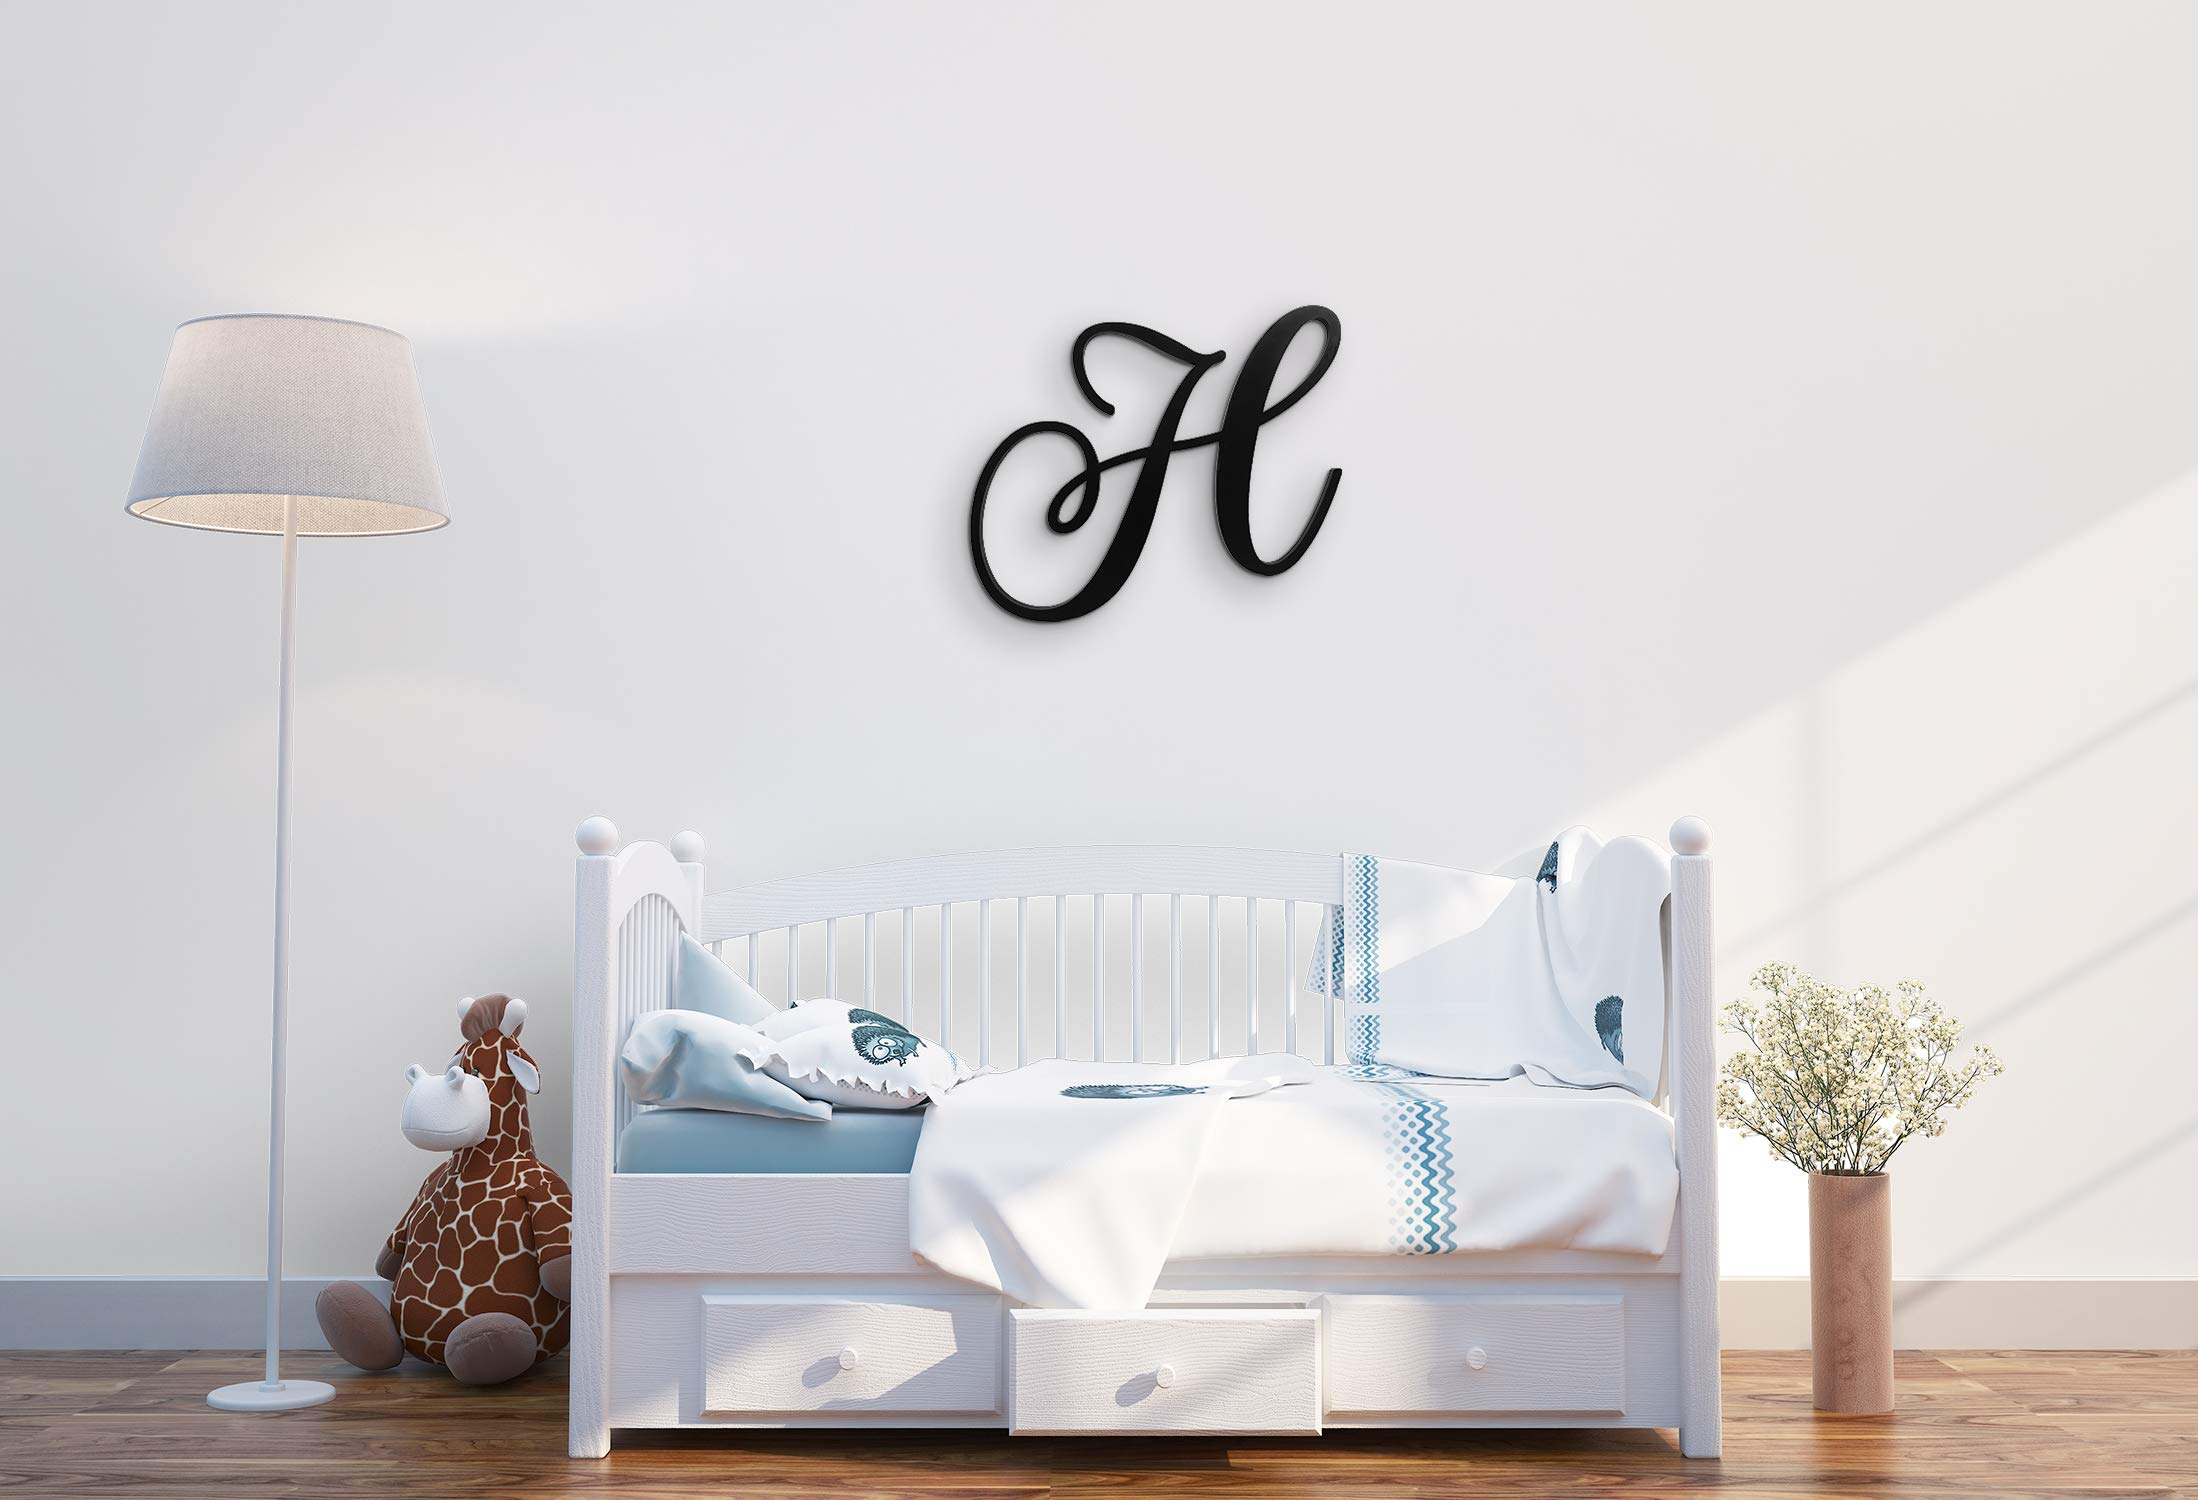 XL Wall Letters Uppercase H | 24'' Wood Paintable Script Capital Letters for Nursery, Home Decor, Wedding Guest Book and More by ROOM STARTERS (H 24'' Black 3/4'' Thick) by ROOM STARTERS (Image #1)